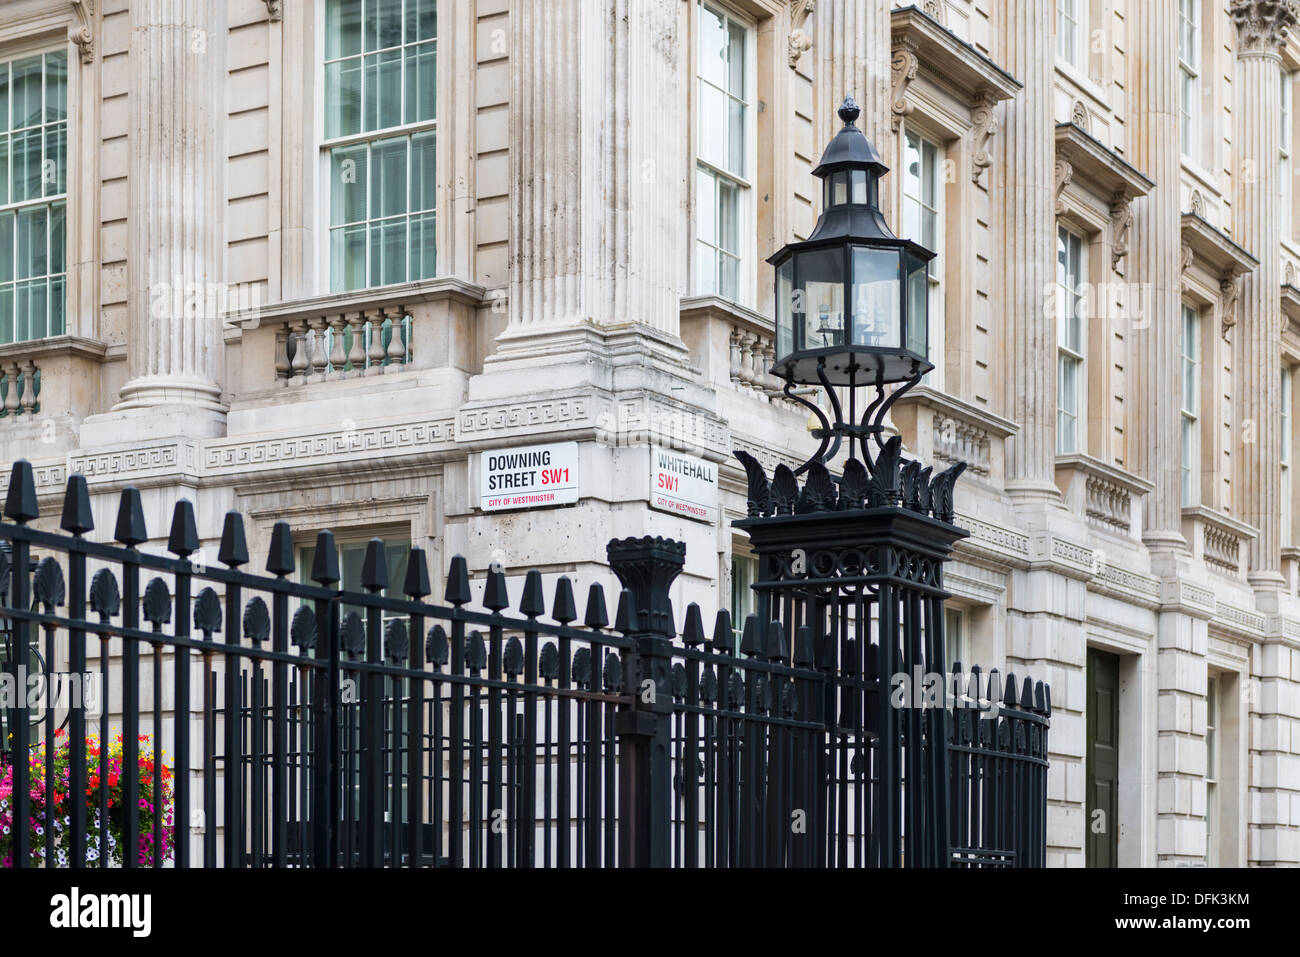 Cropped shot of gates with street signs for Downing Street and Whitehall - Stock Image